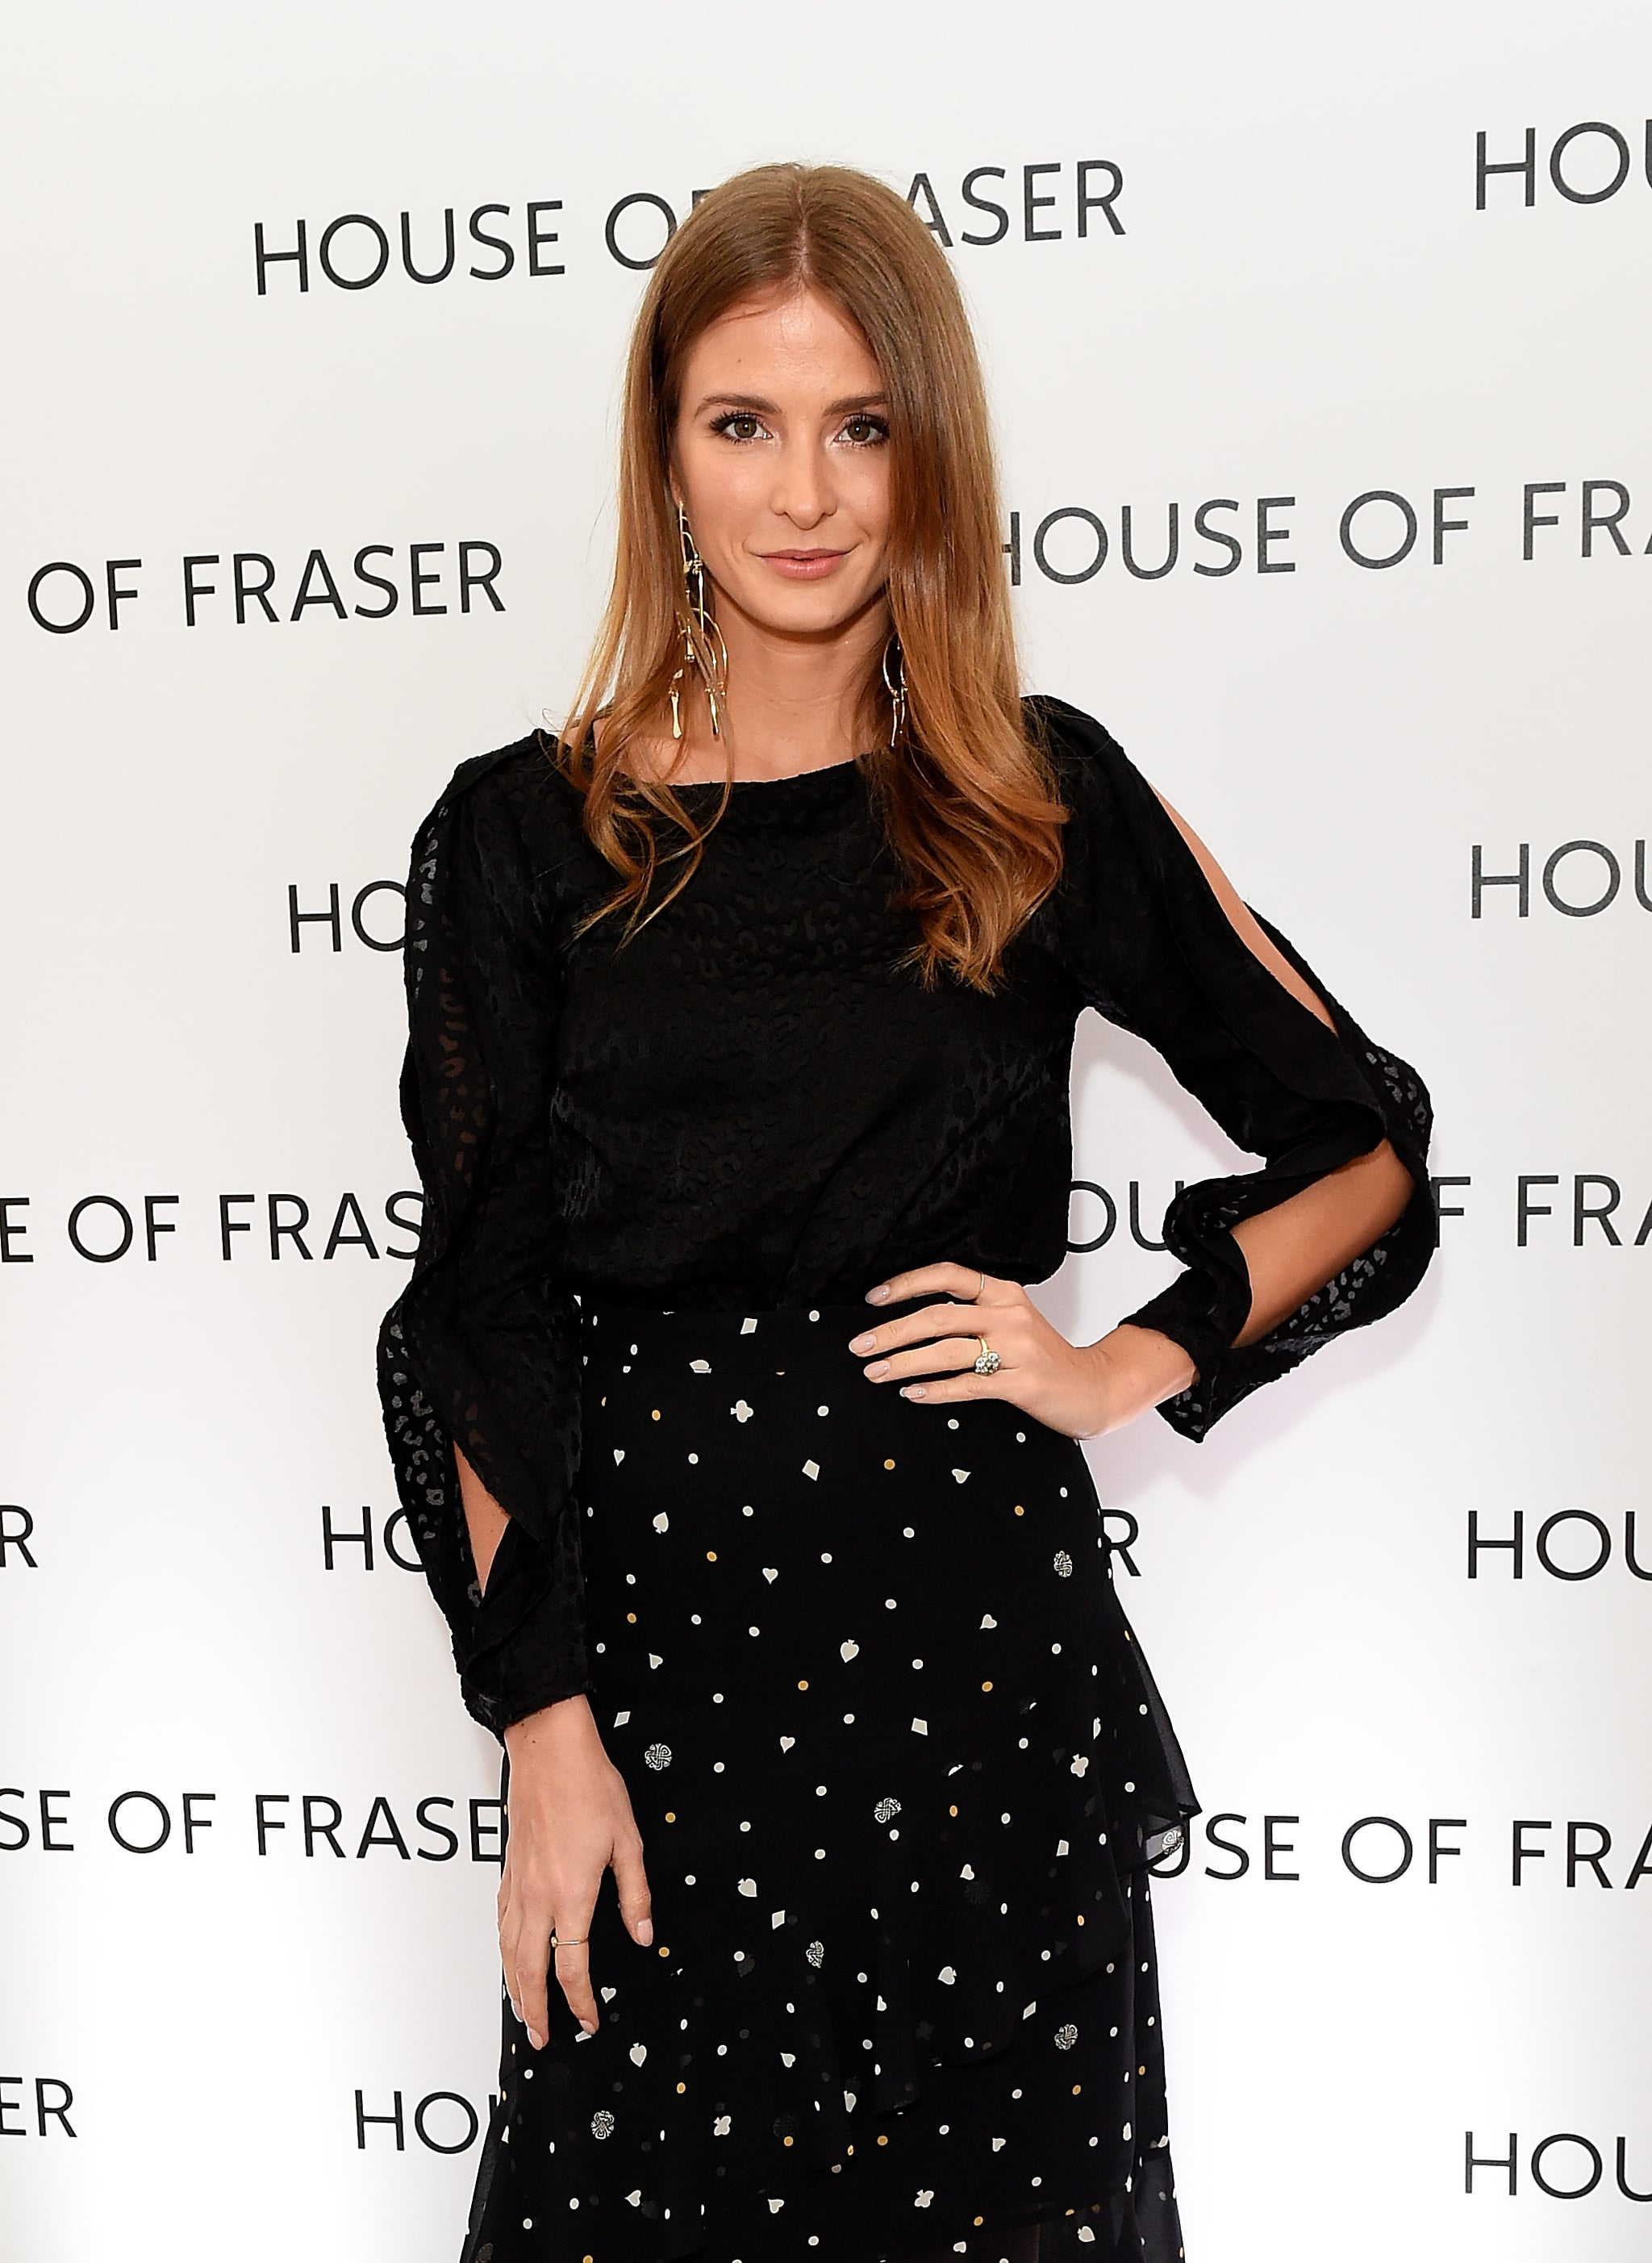 LONDON, ENGLAND - MARCH 21:  Millie Mackintosh attends the House of Fraser SS18 launch dinner at One Belgravia on March 21, 2018 in London, England.  (Photo by David M. Benett/Dave Benett/Getty Images for House of Fraser)